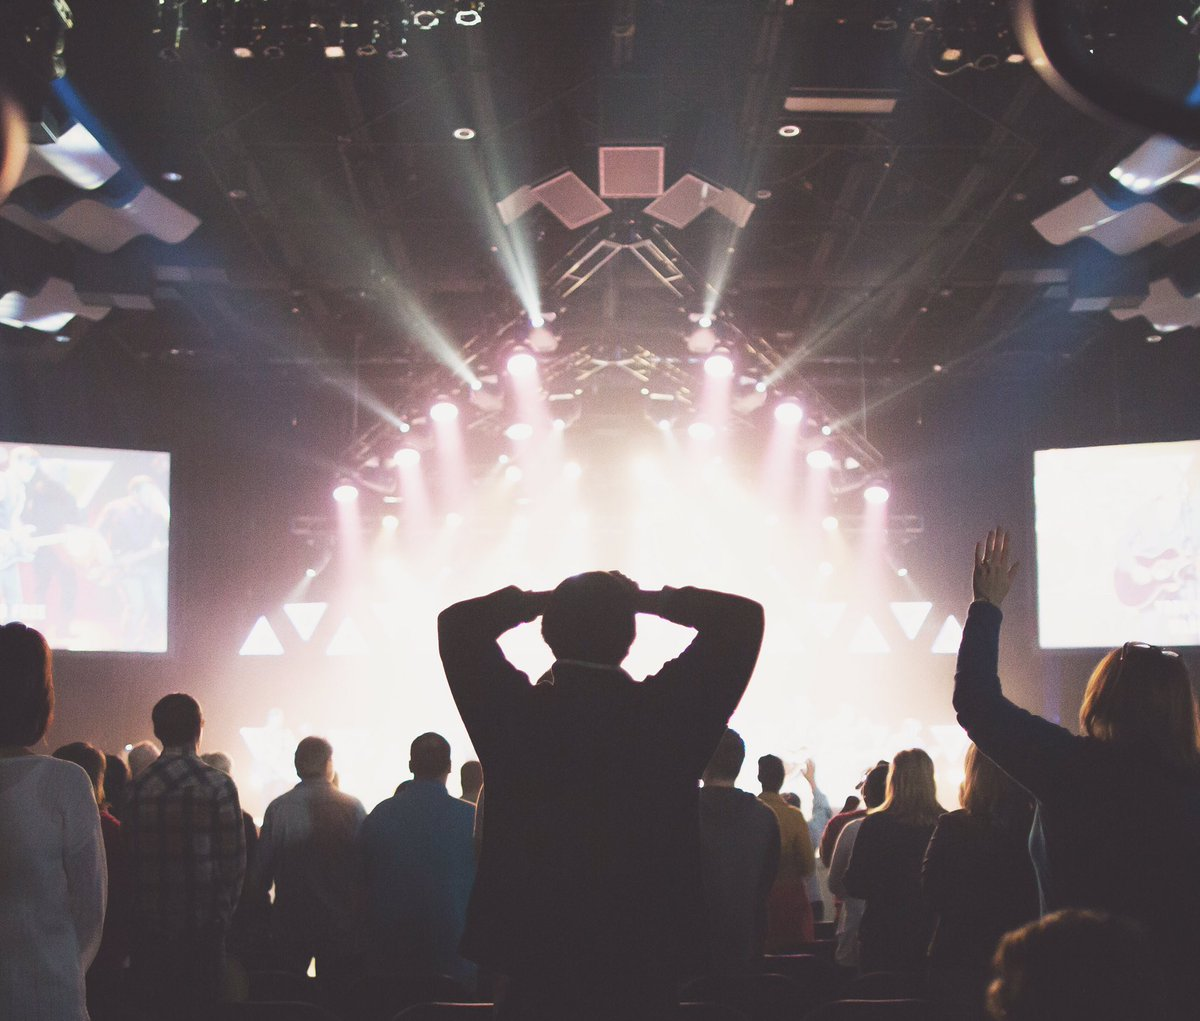 ...That moment when you realize how awesome Jesus is in the middle of worship. https://t.co/cfgnWCq4TZ